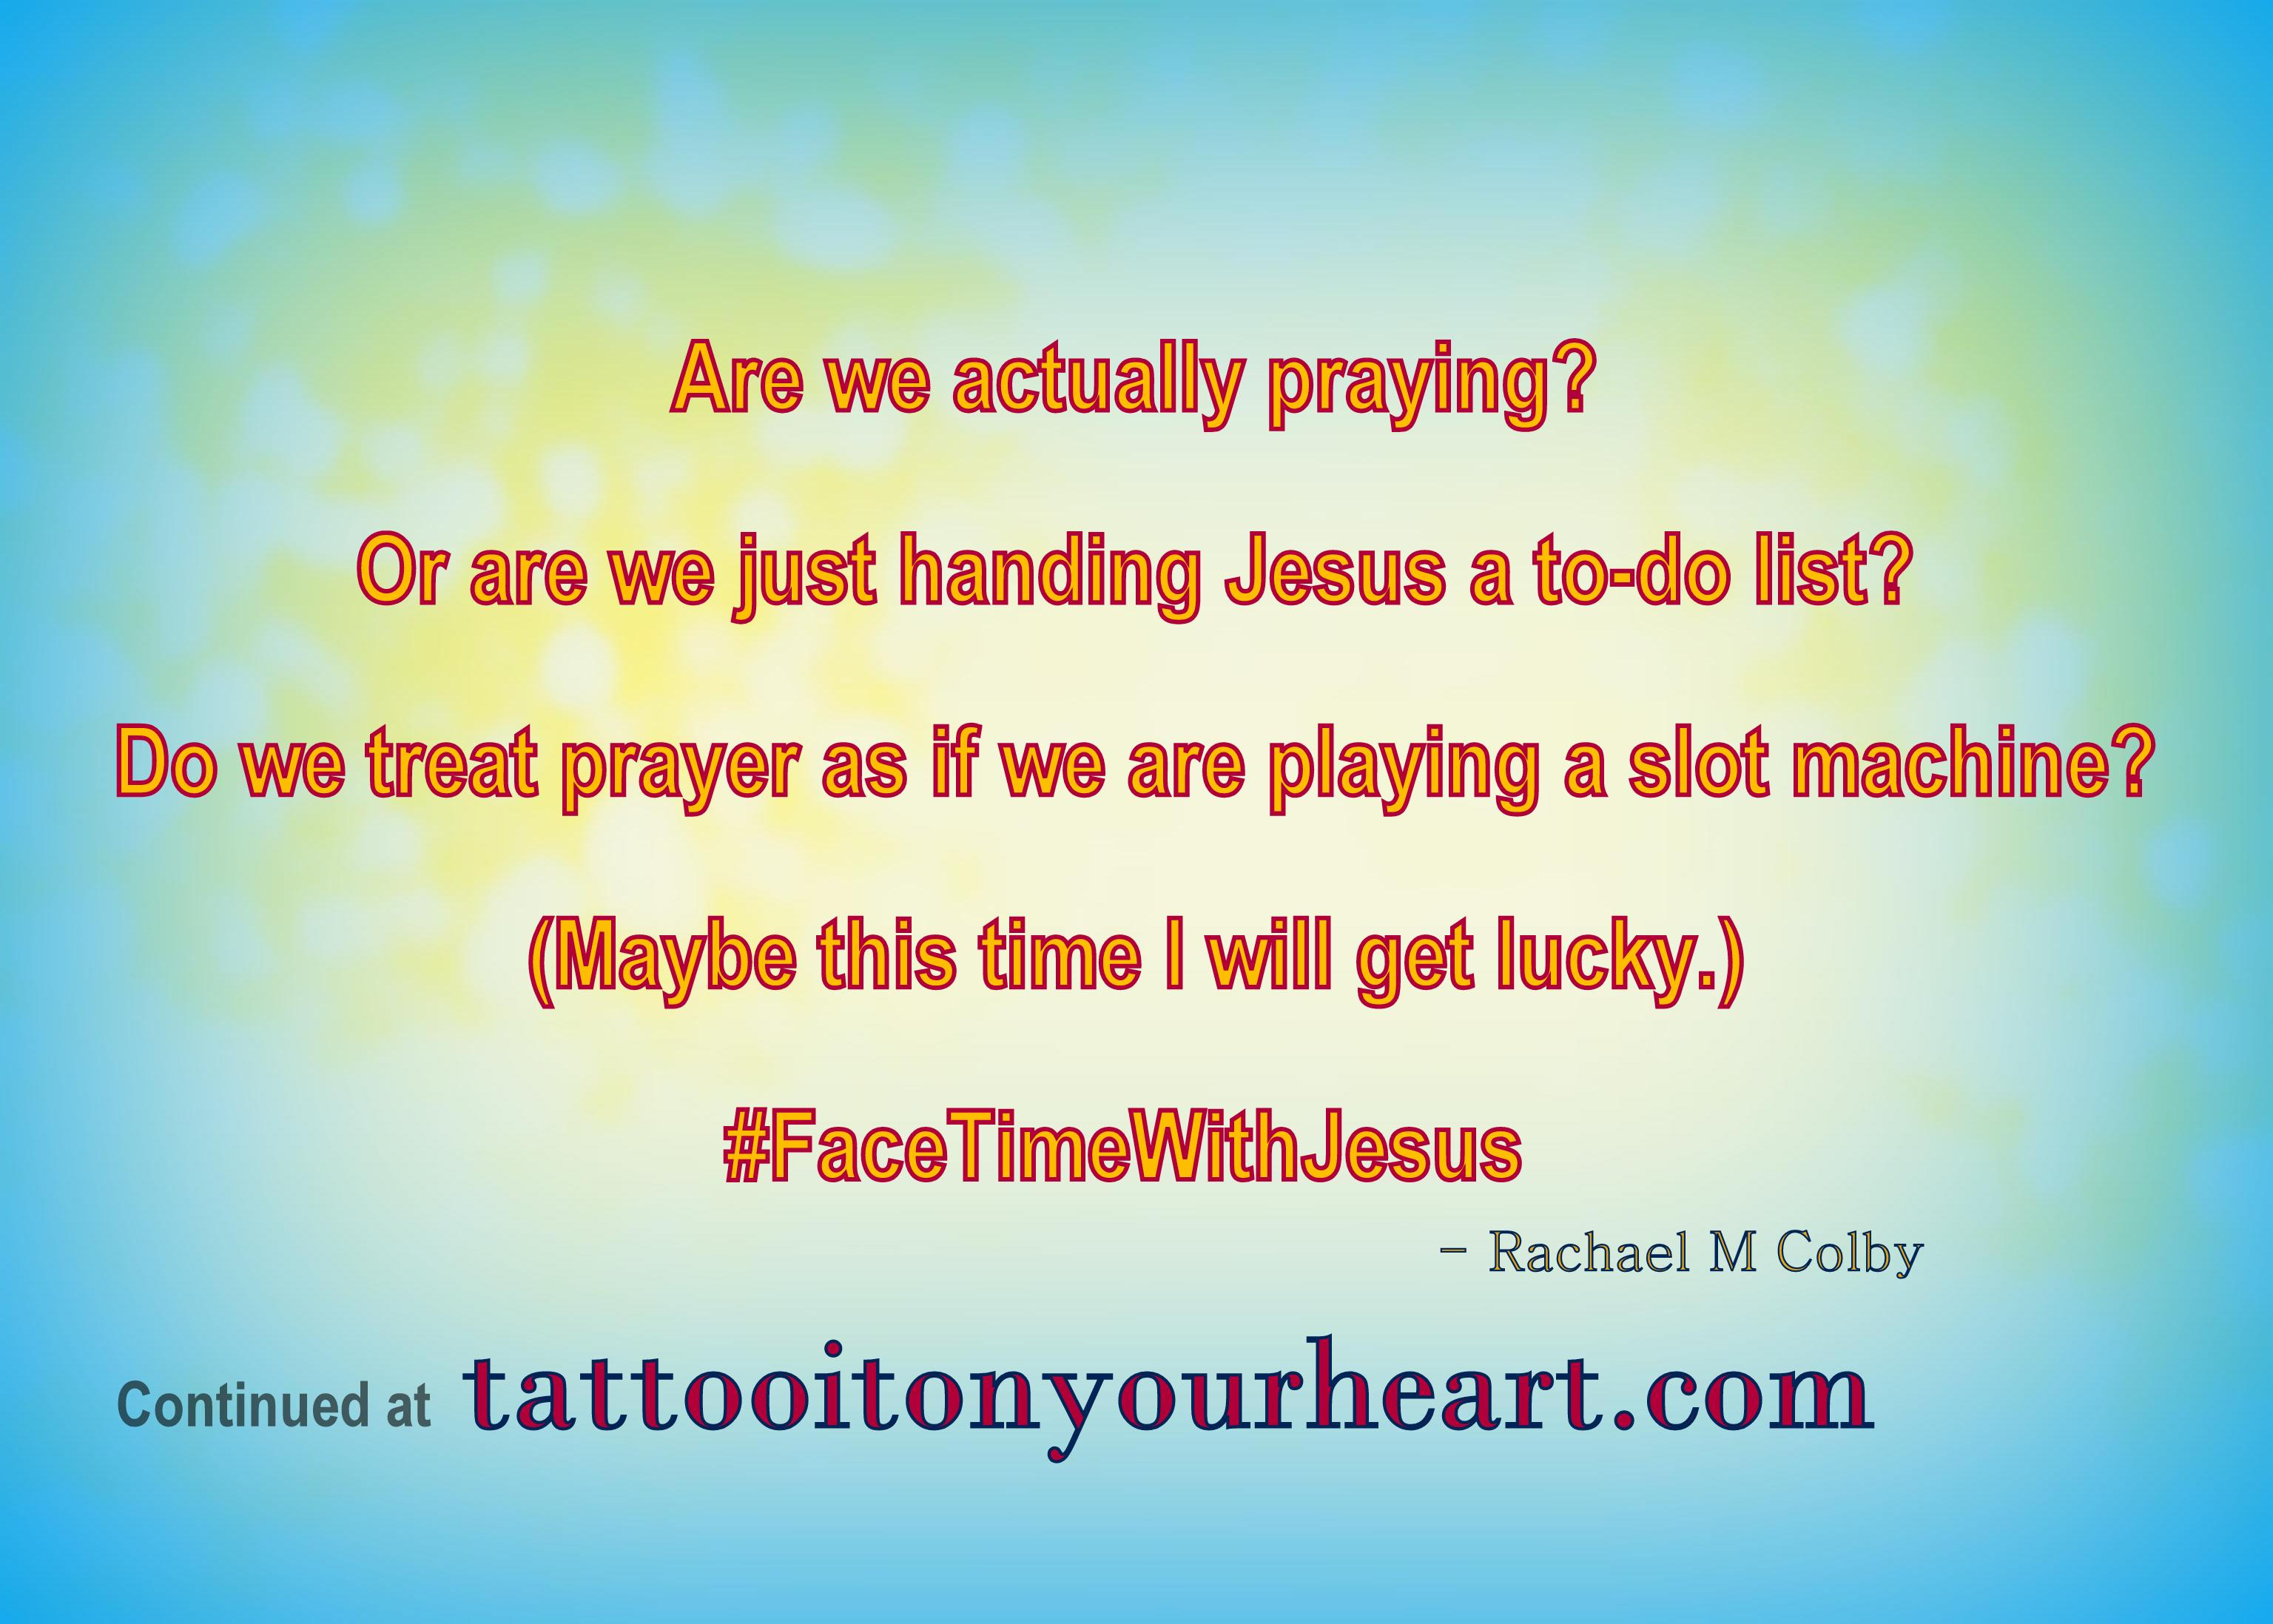 tattoo_it_on_your_heart_rachael_m_colby_are_you-actually_praying